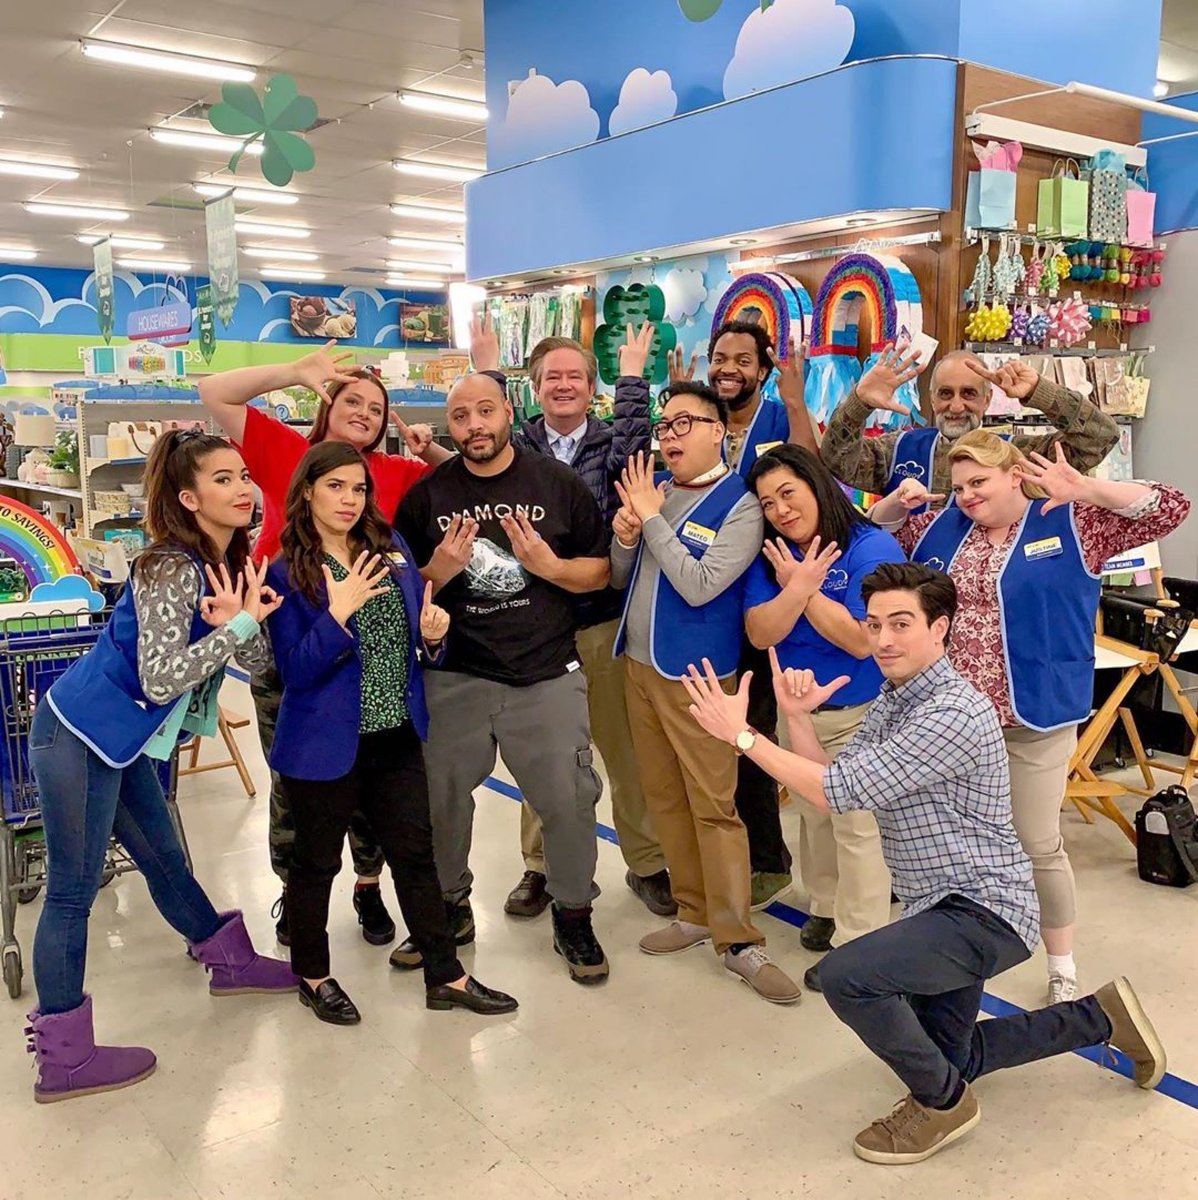 @NBCSuperstore's photo on #Superstore